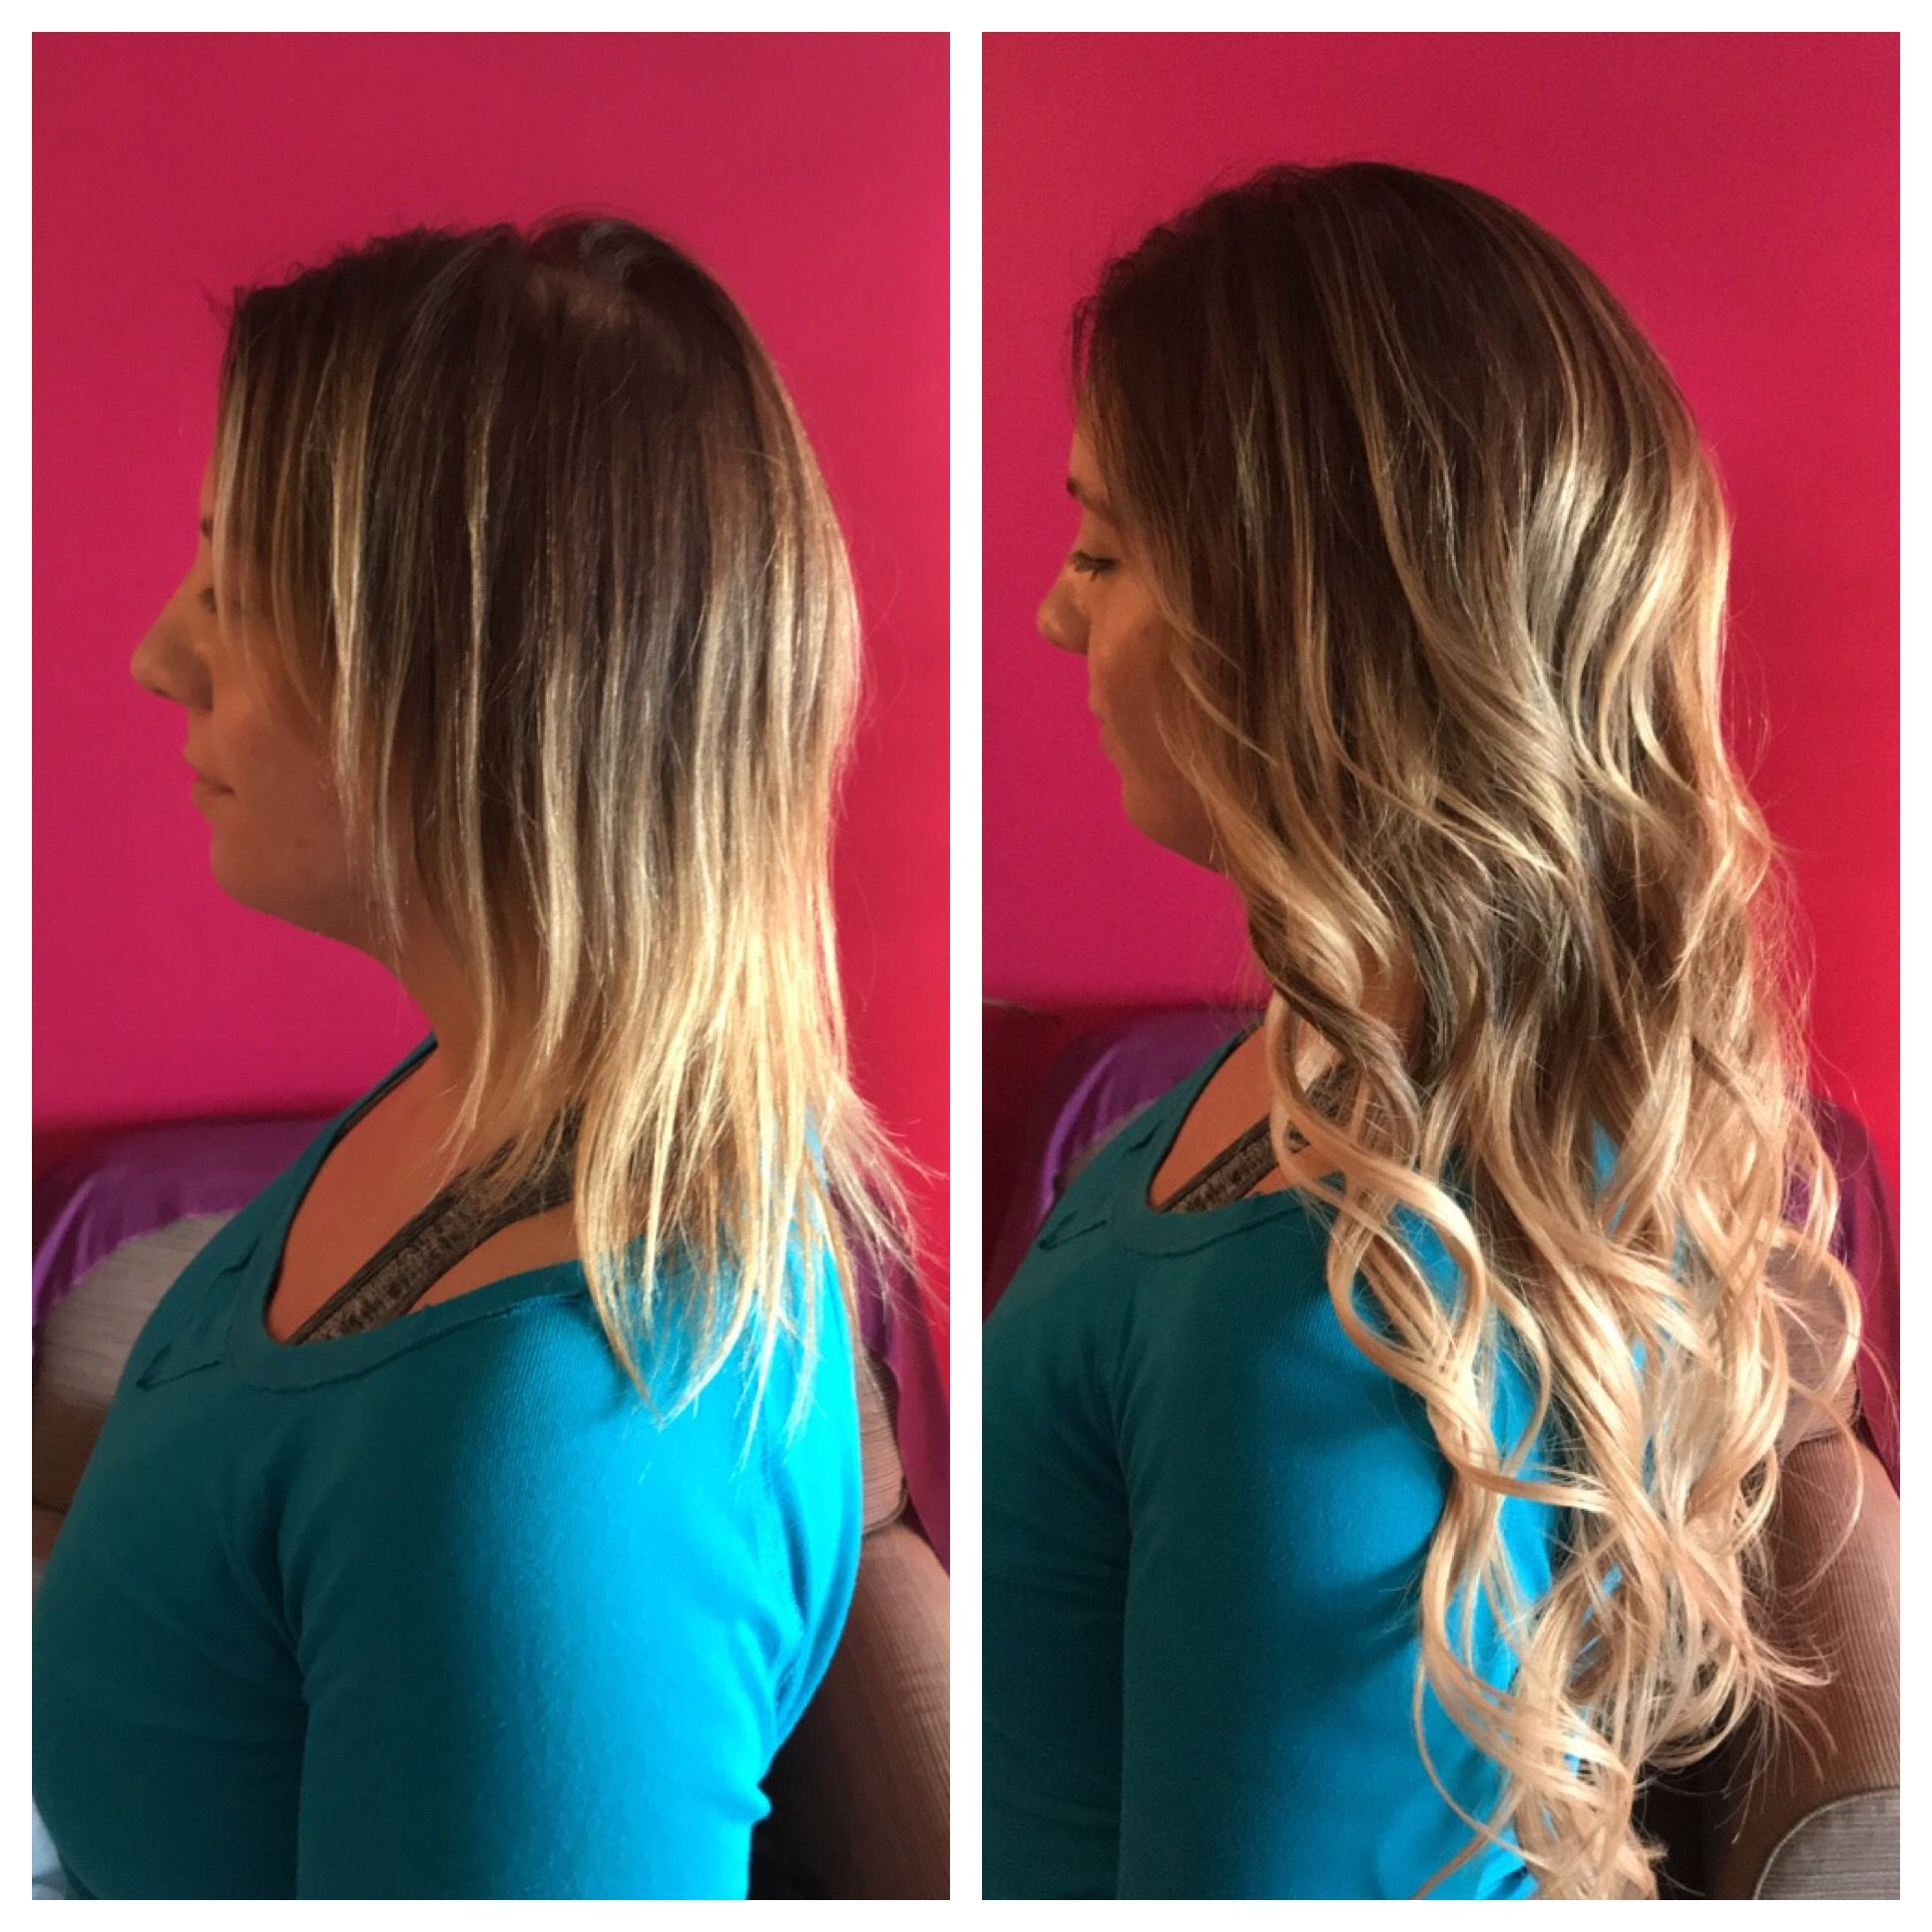 Cold Fusion Hair Extensions Done By Gina From Glamhairus Down Dos